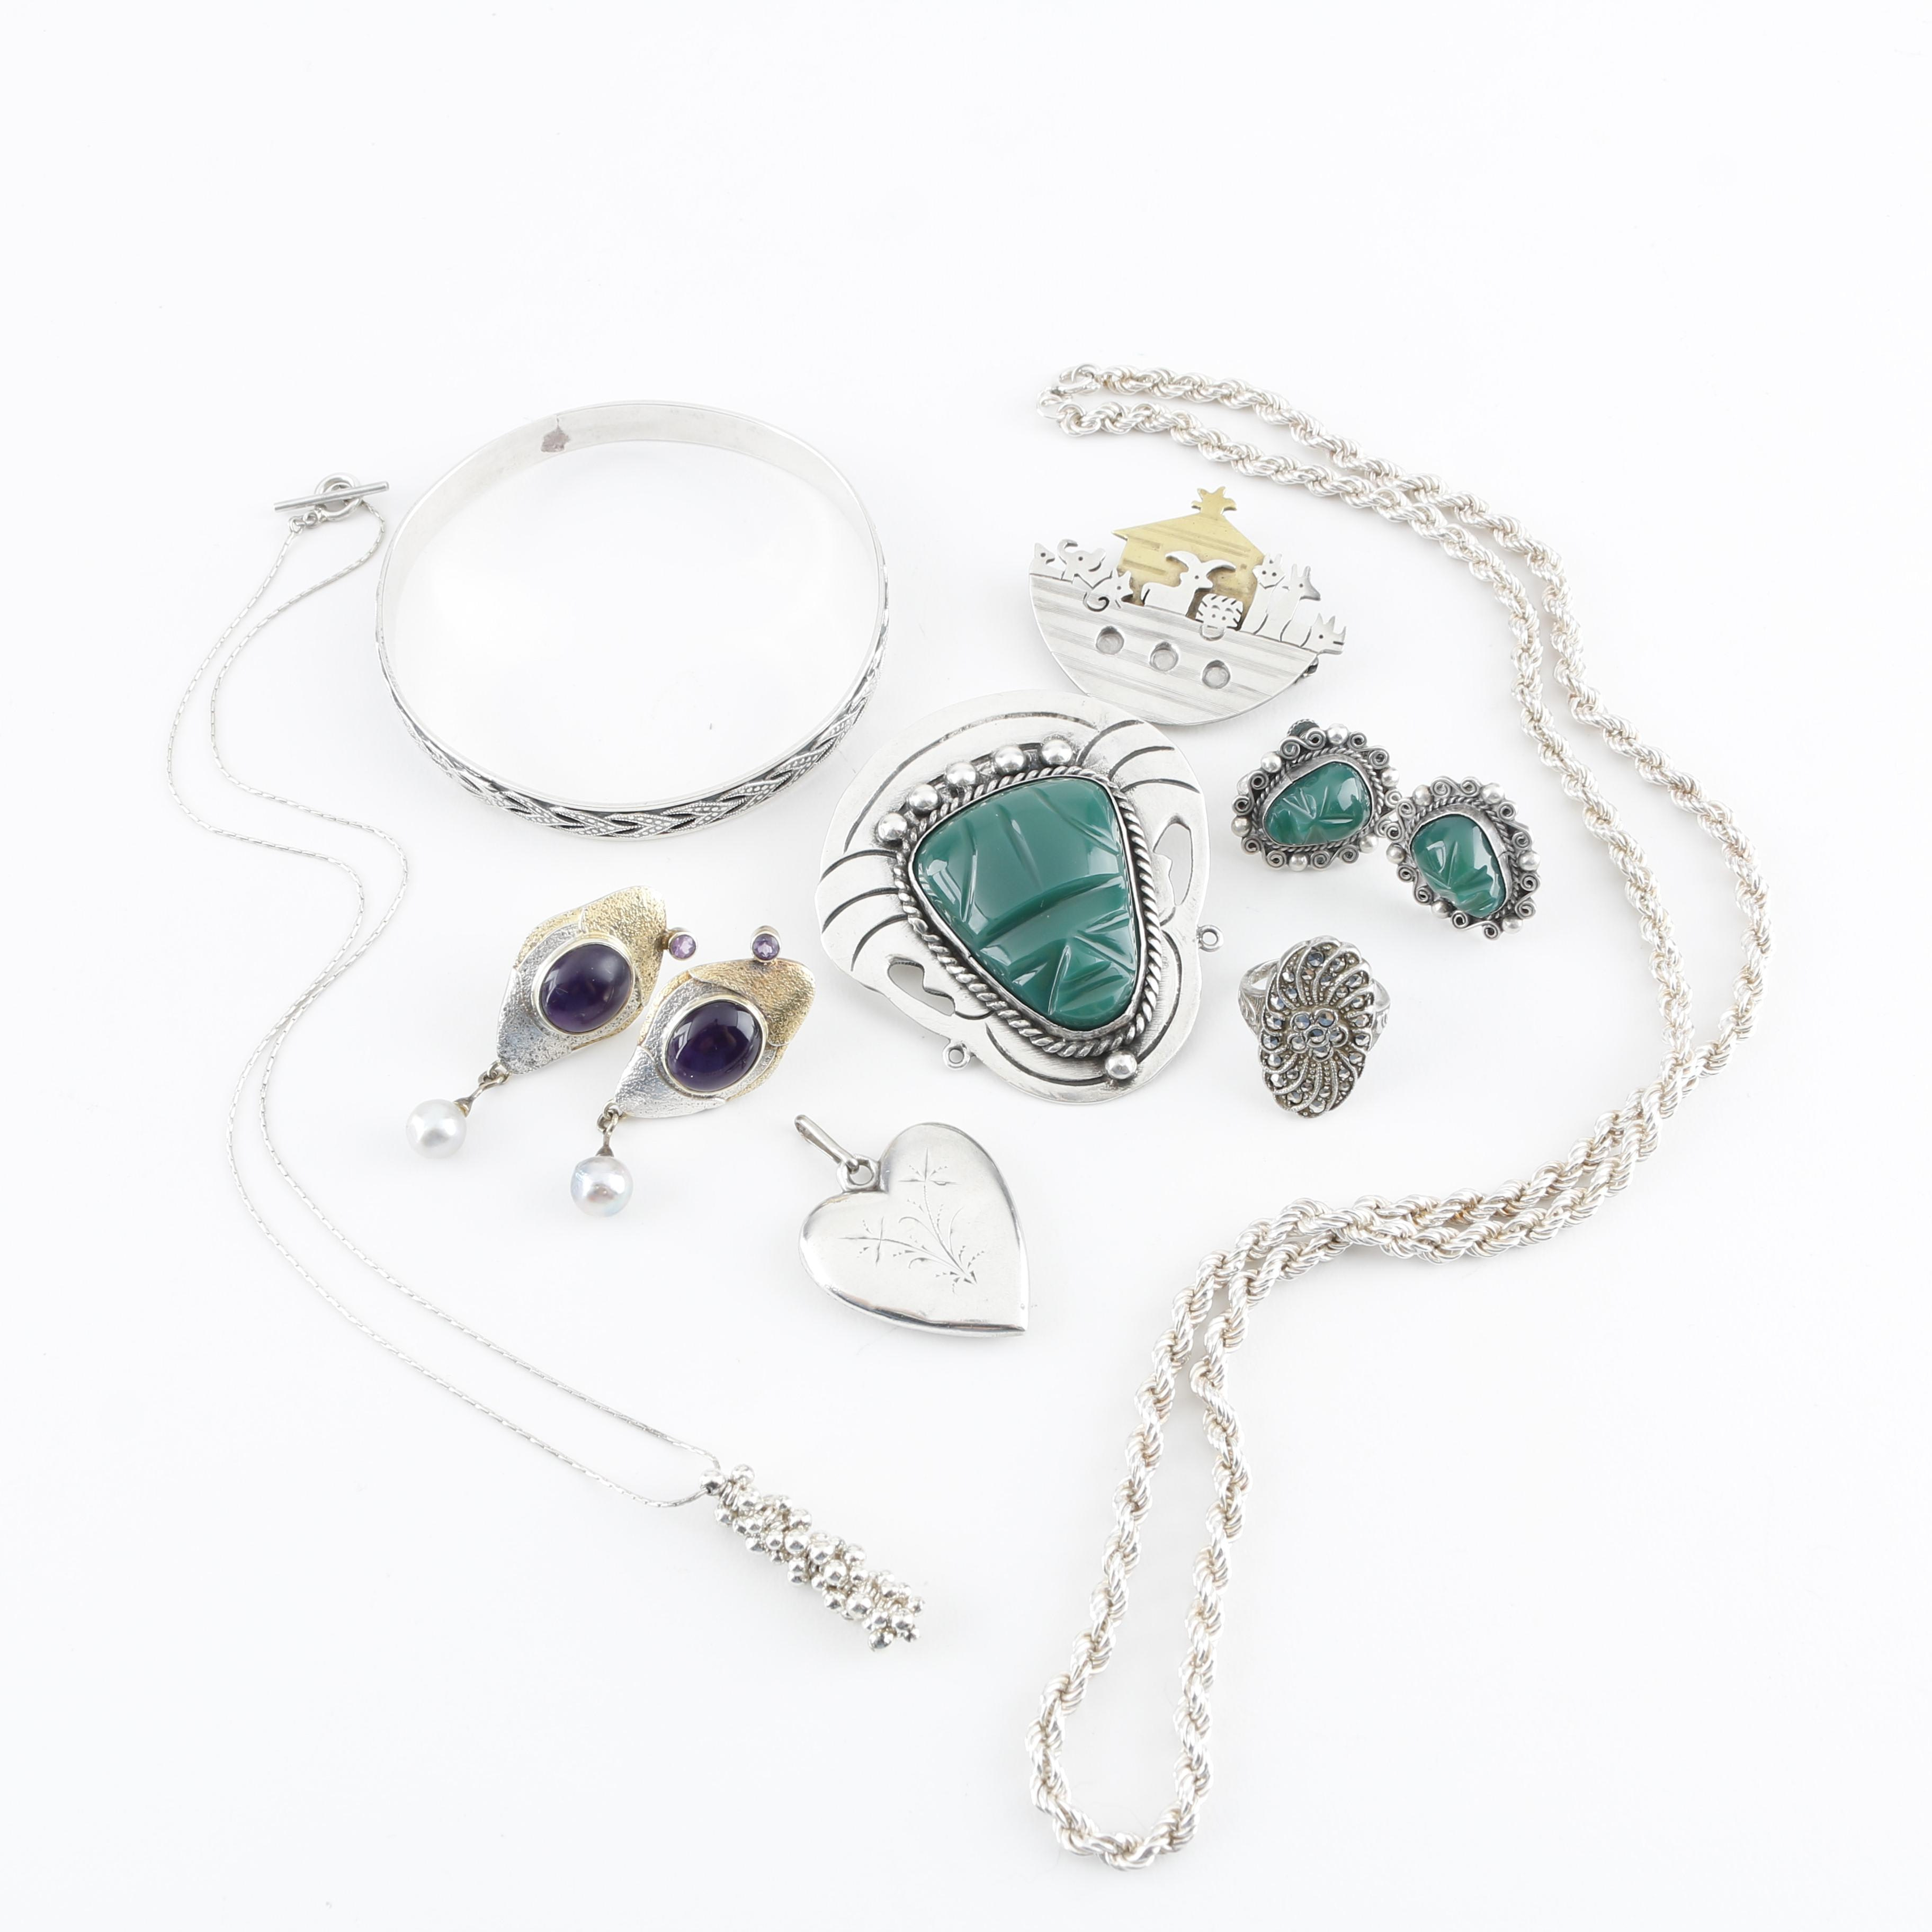 Sterling Silver Jewelry Assortment Including Taxco